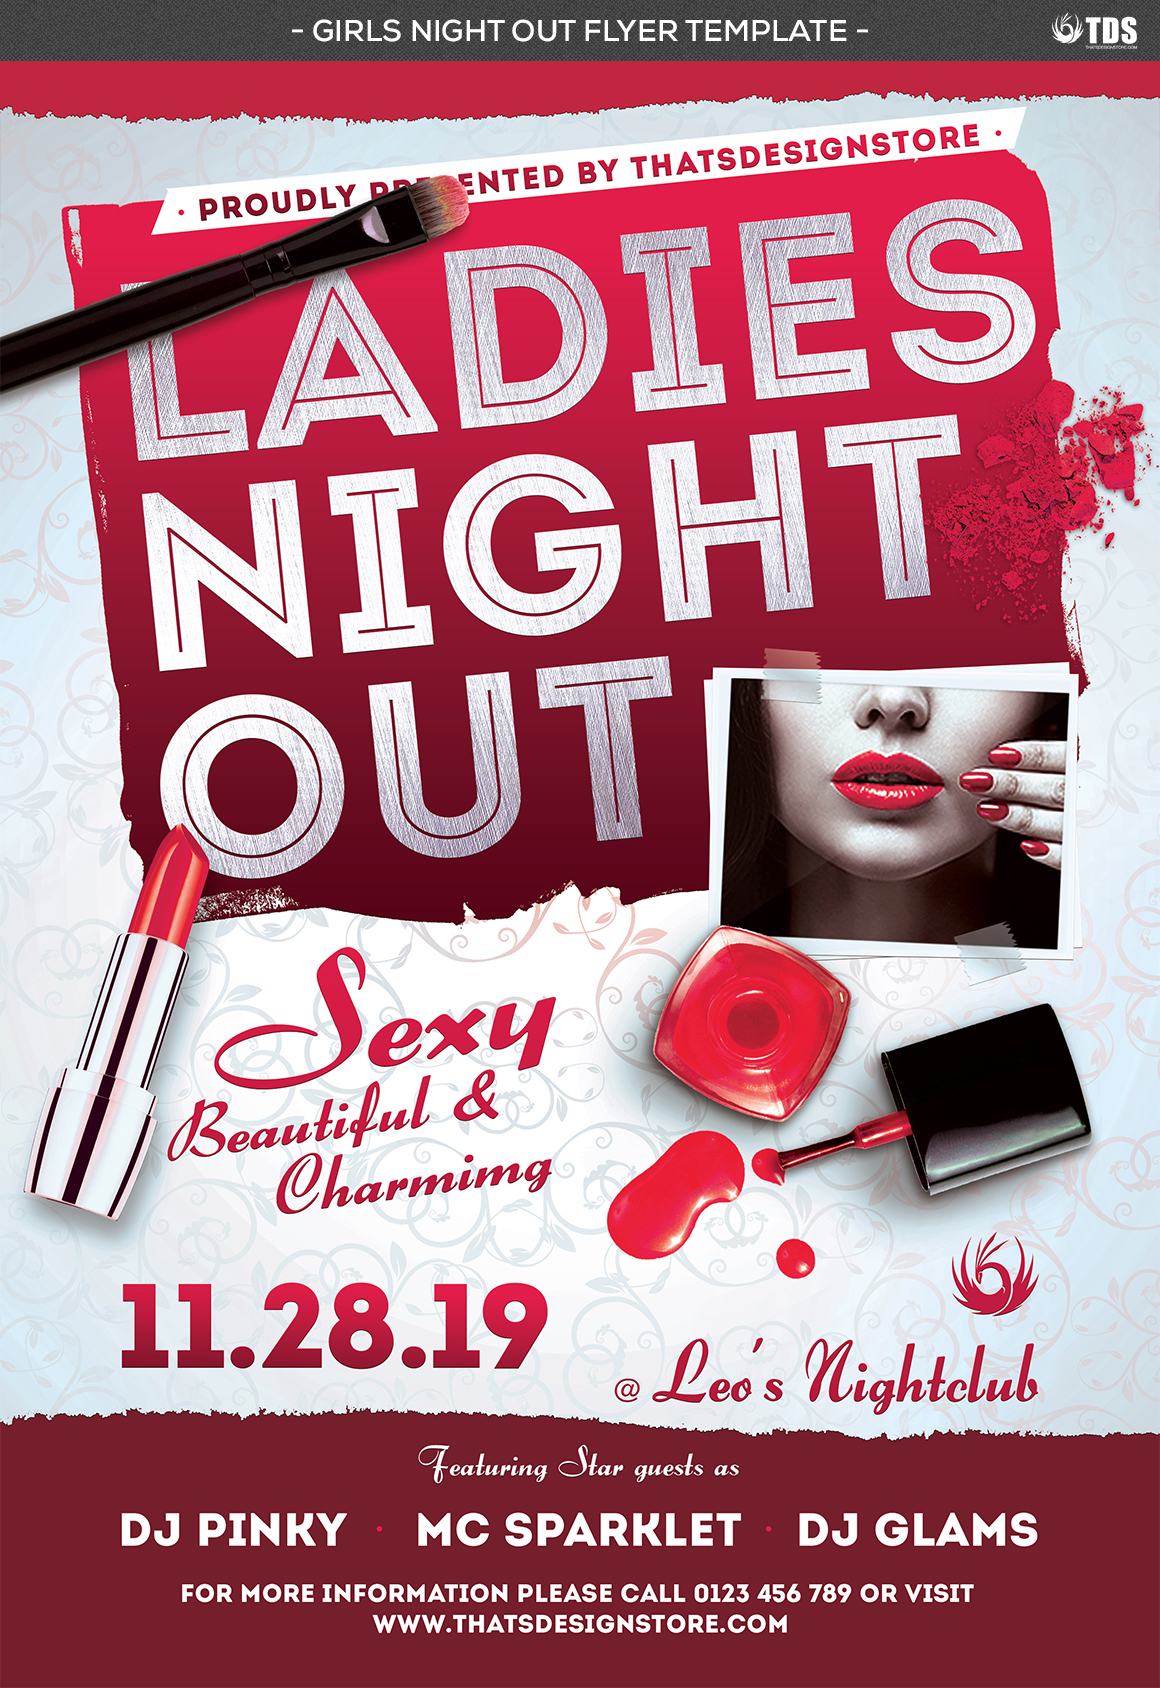 Girls Night Out Flyer Template example image 5